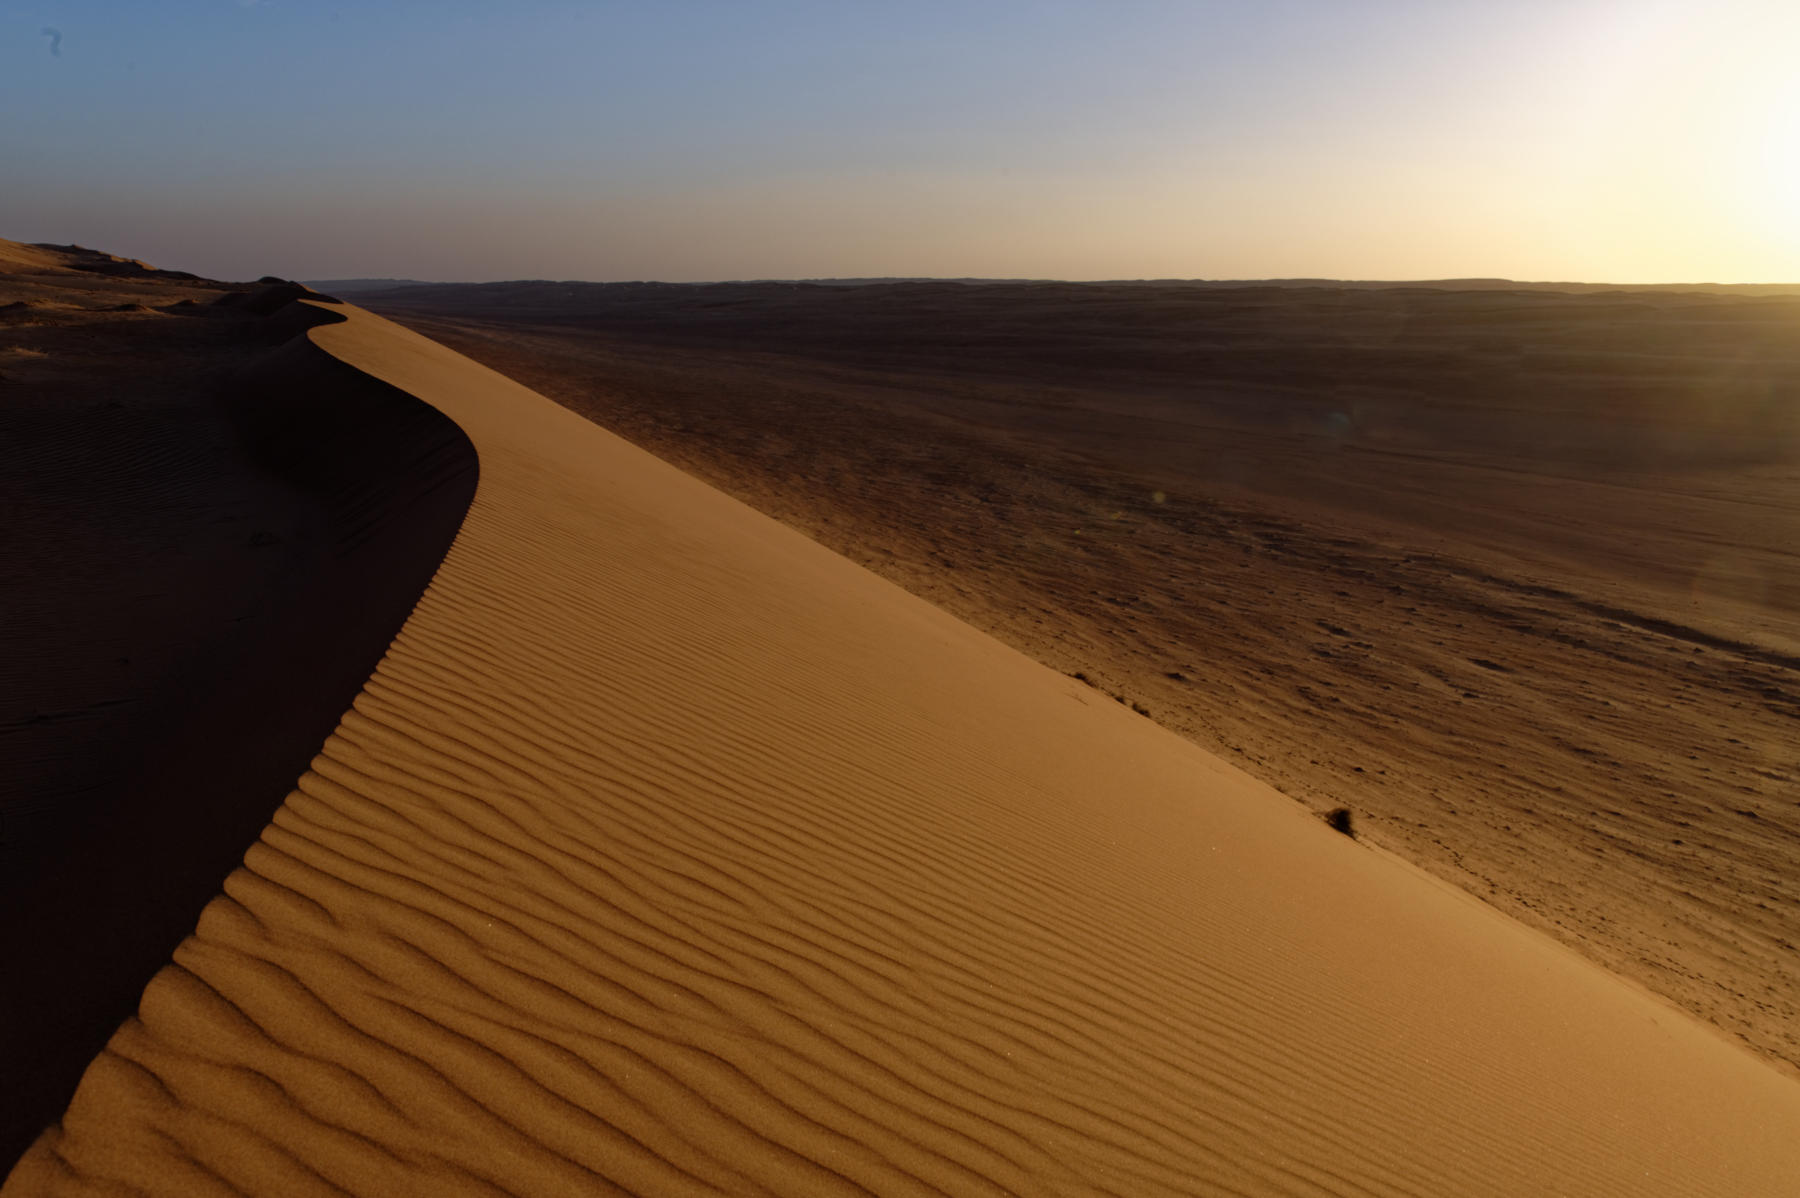 Sunset, Wahiba sands, Oman desert